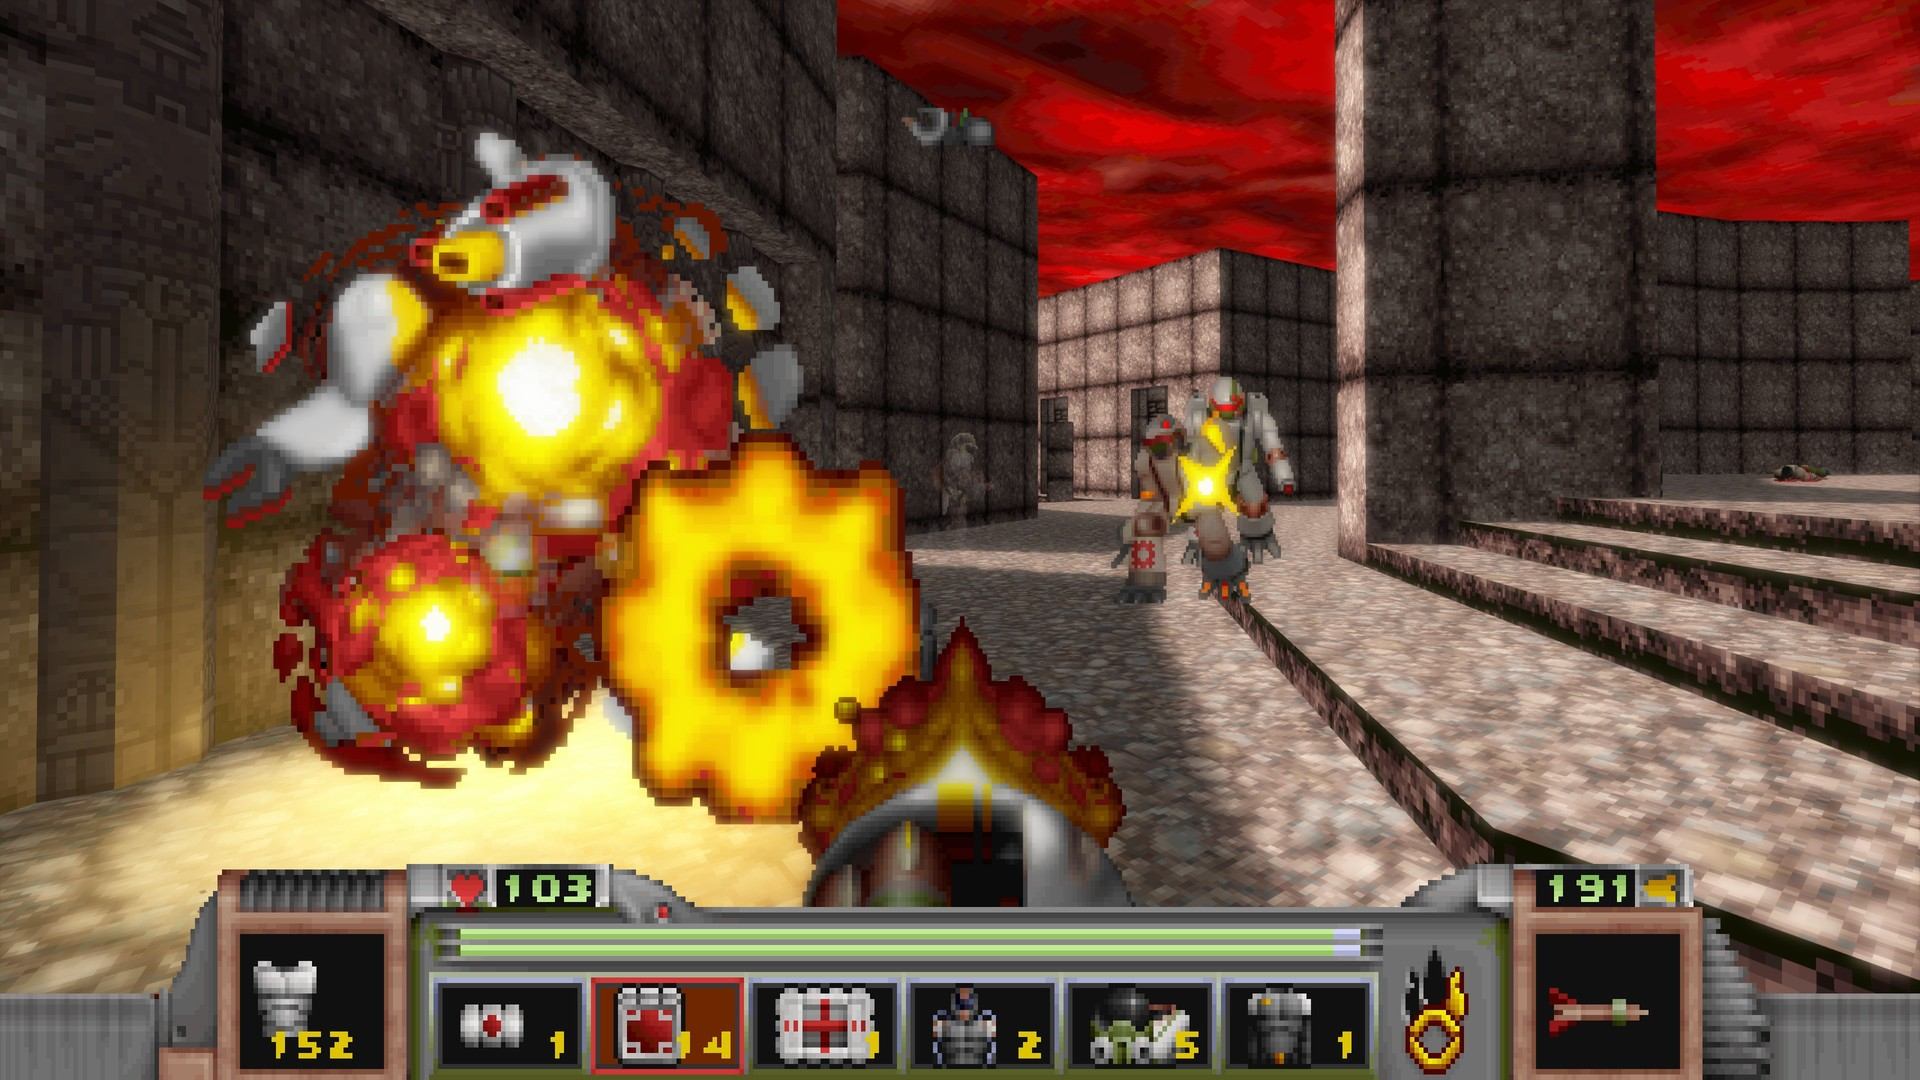 The Original Strife: Veteran Edition Is an Old FPS Built on